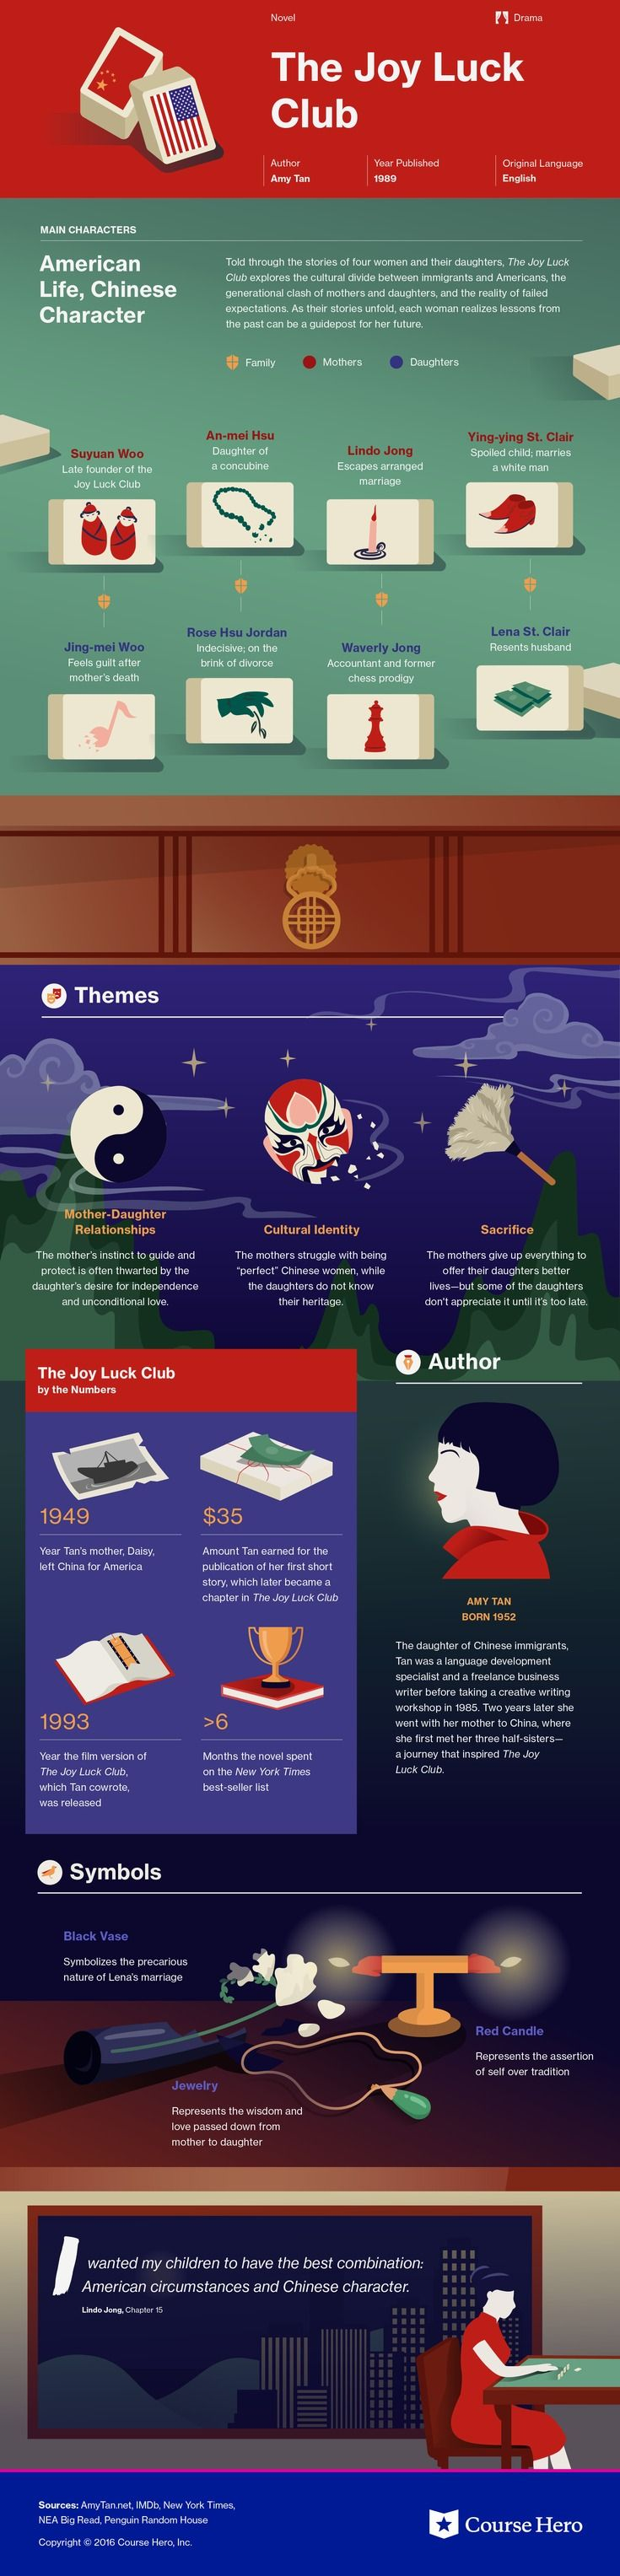 best ideas about the joy luck club novels this coursehero infographic on the joy luck club is both visually stunning and informative